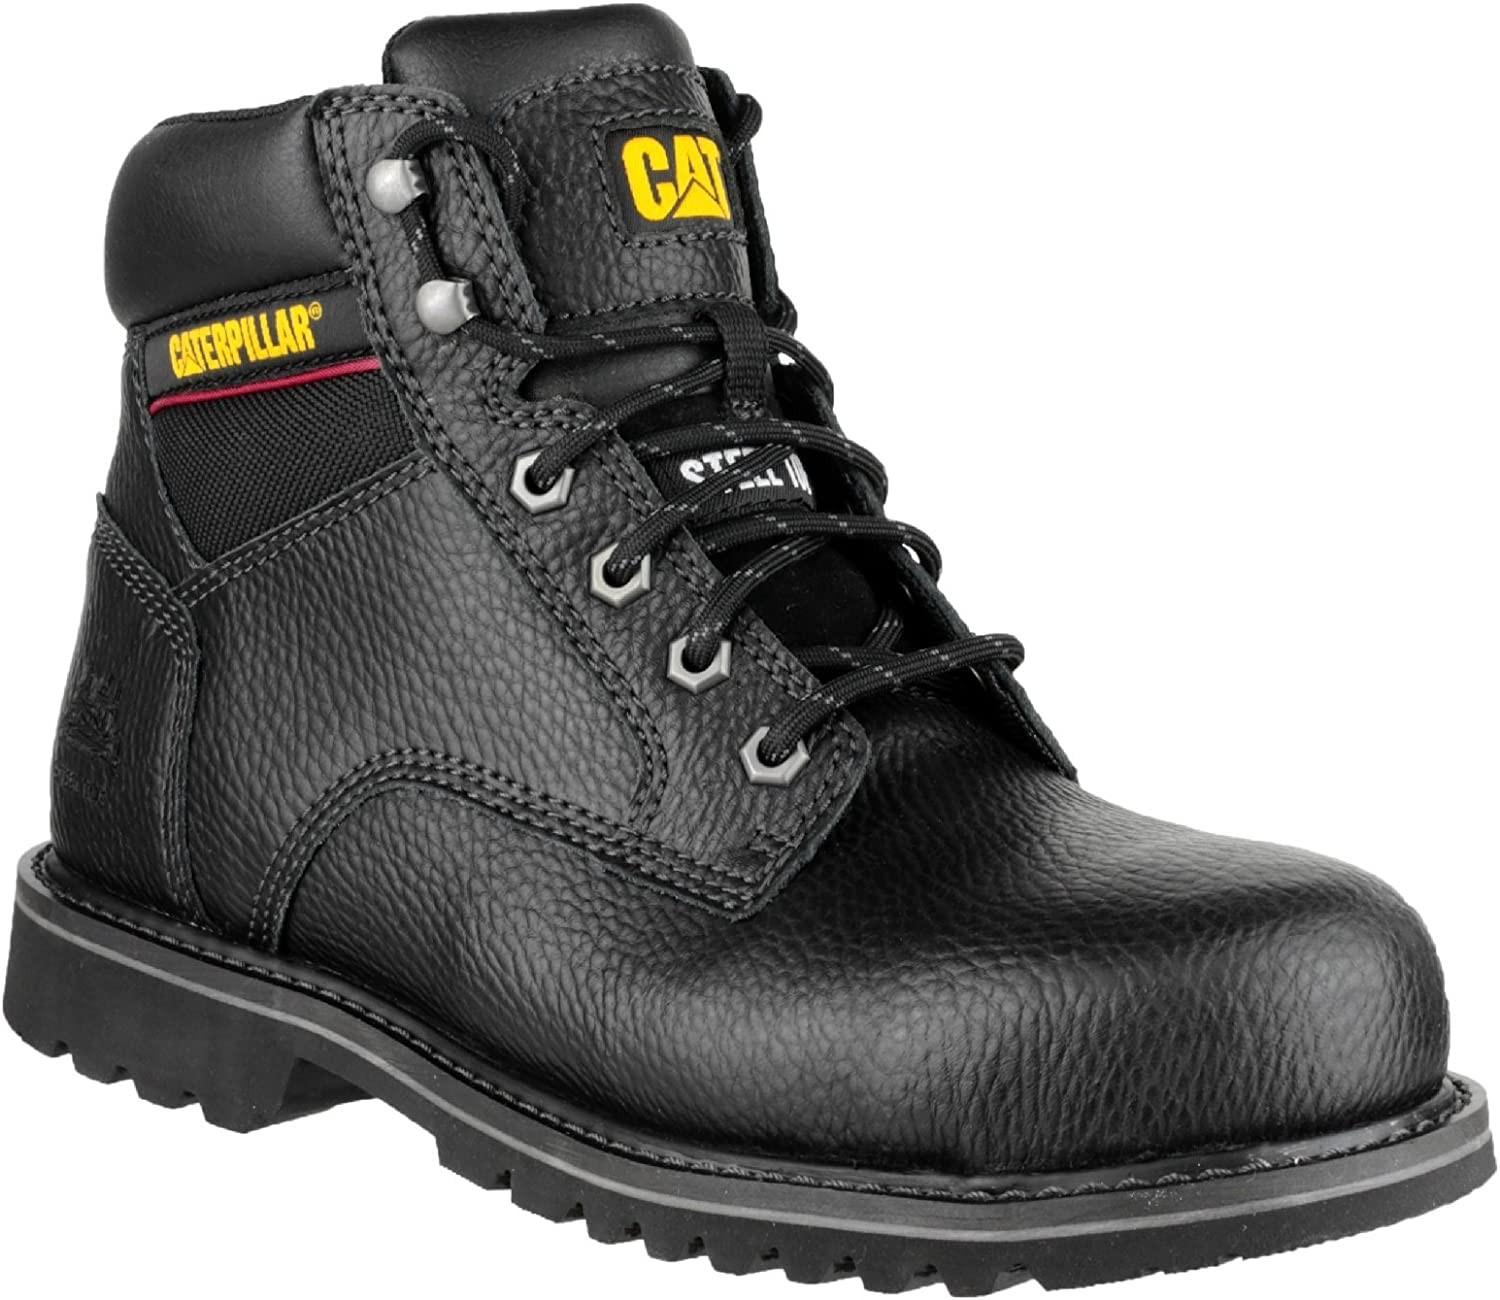 Caterpillar Electric Mens 6 Black Safety Boots (7 UK) (Black)